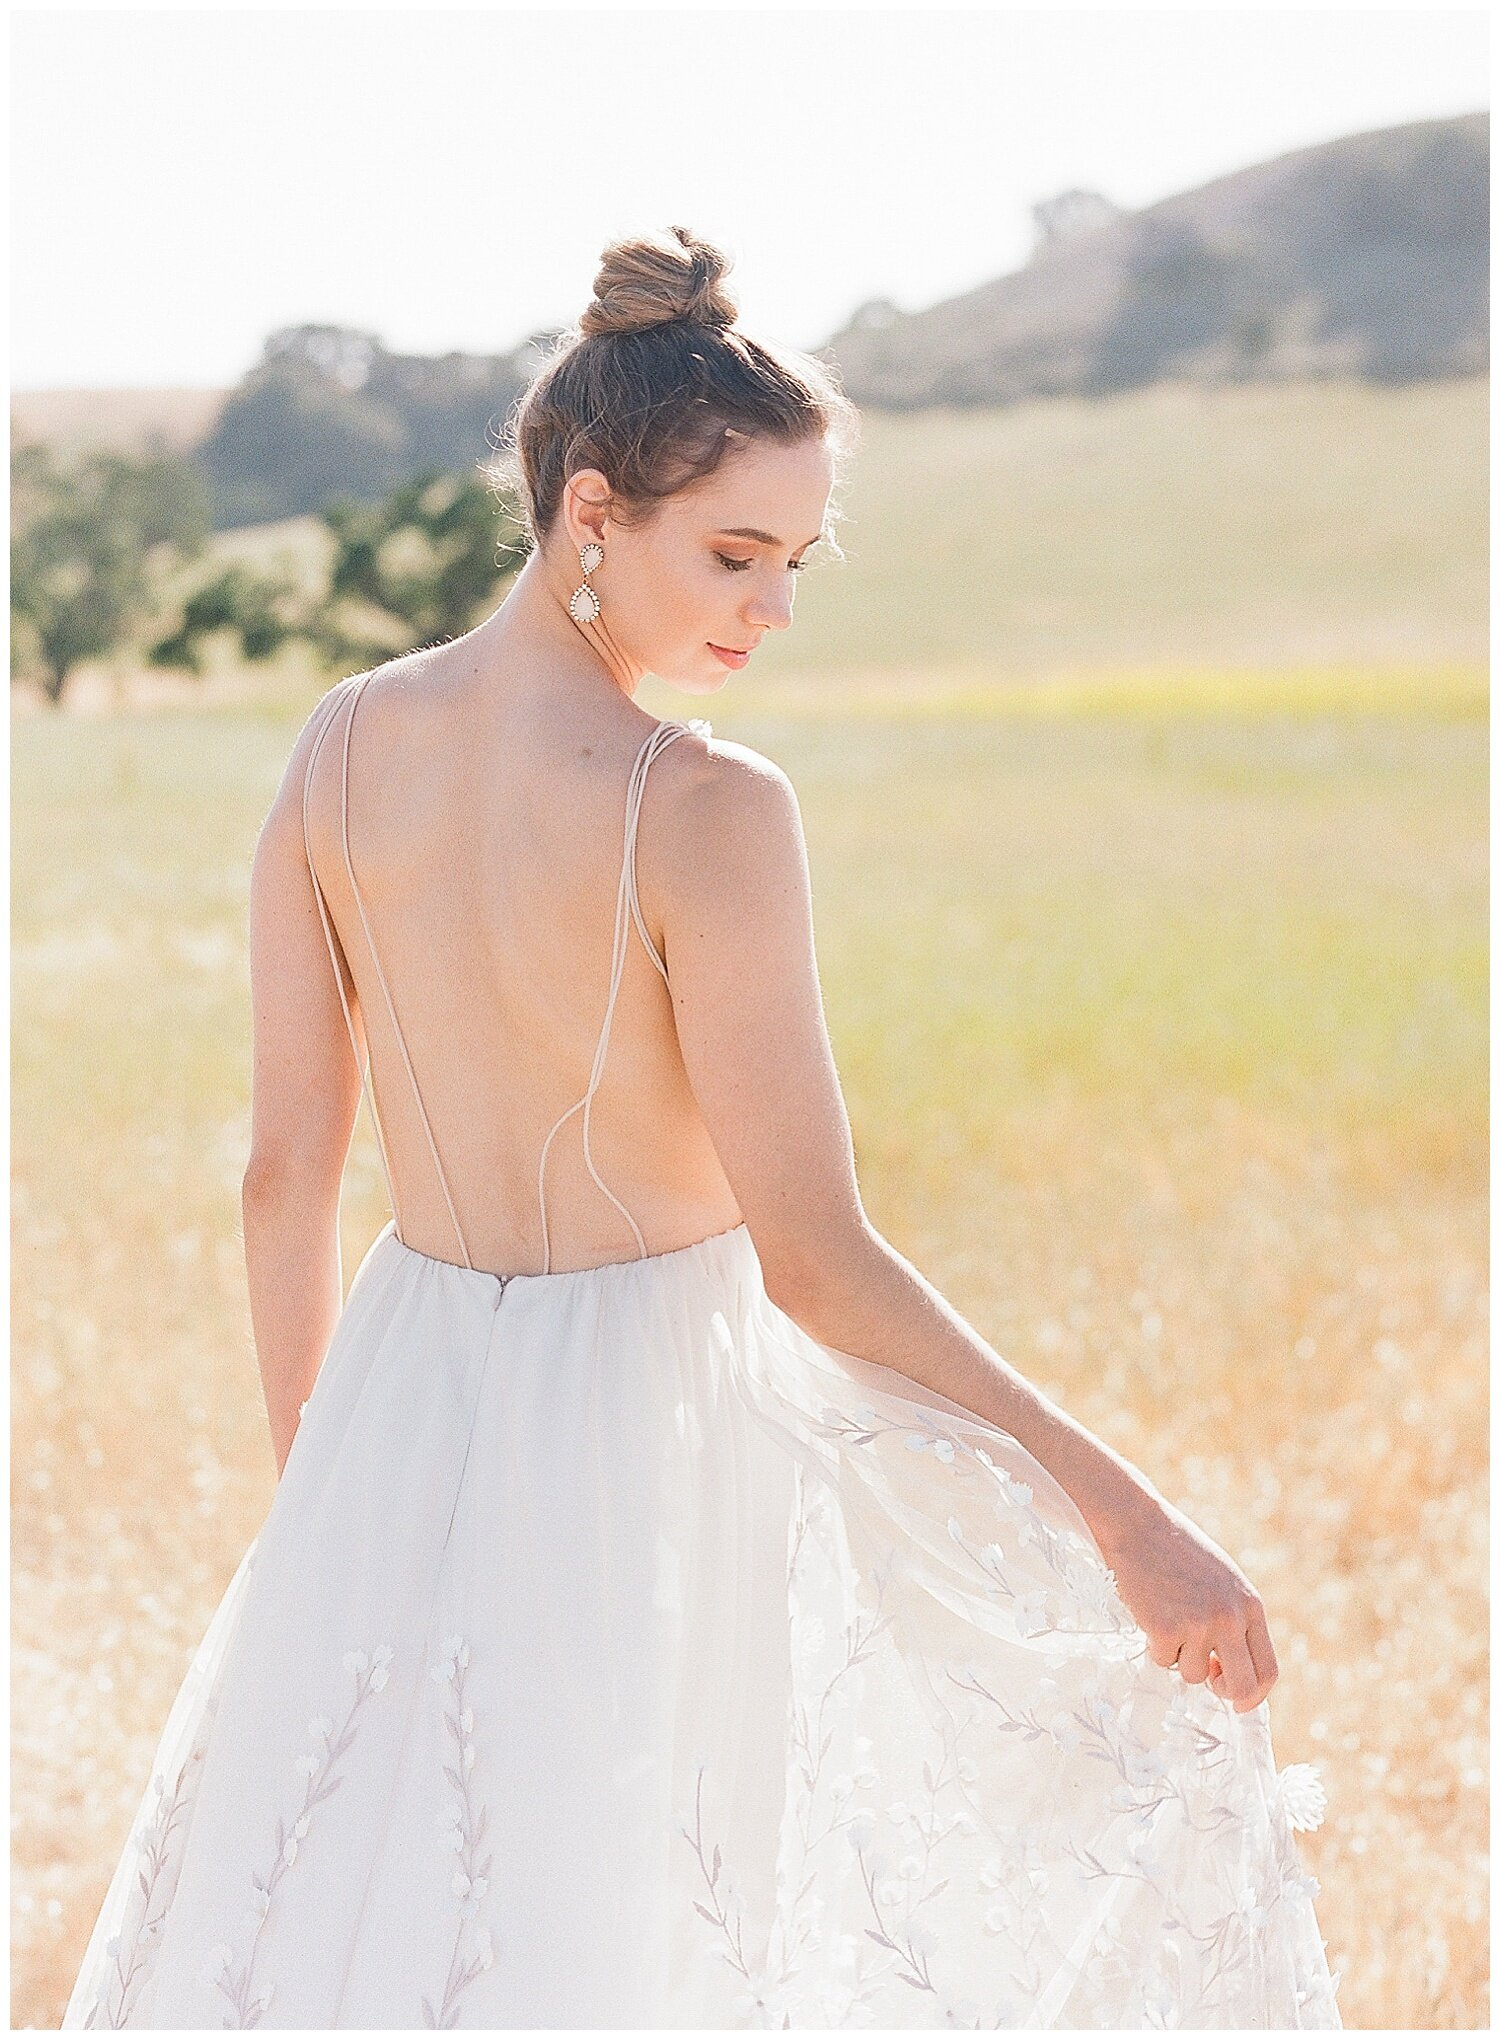 Janine_Licare_Photography_San_Francisco_Kestrel_Park_Santa_Ynez_Sunstone_Villa_Winer_Wedding_Photographer_Meadowood_Napa_Valley_Sonoma_0071.jpg